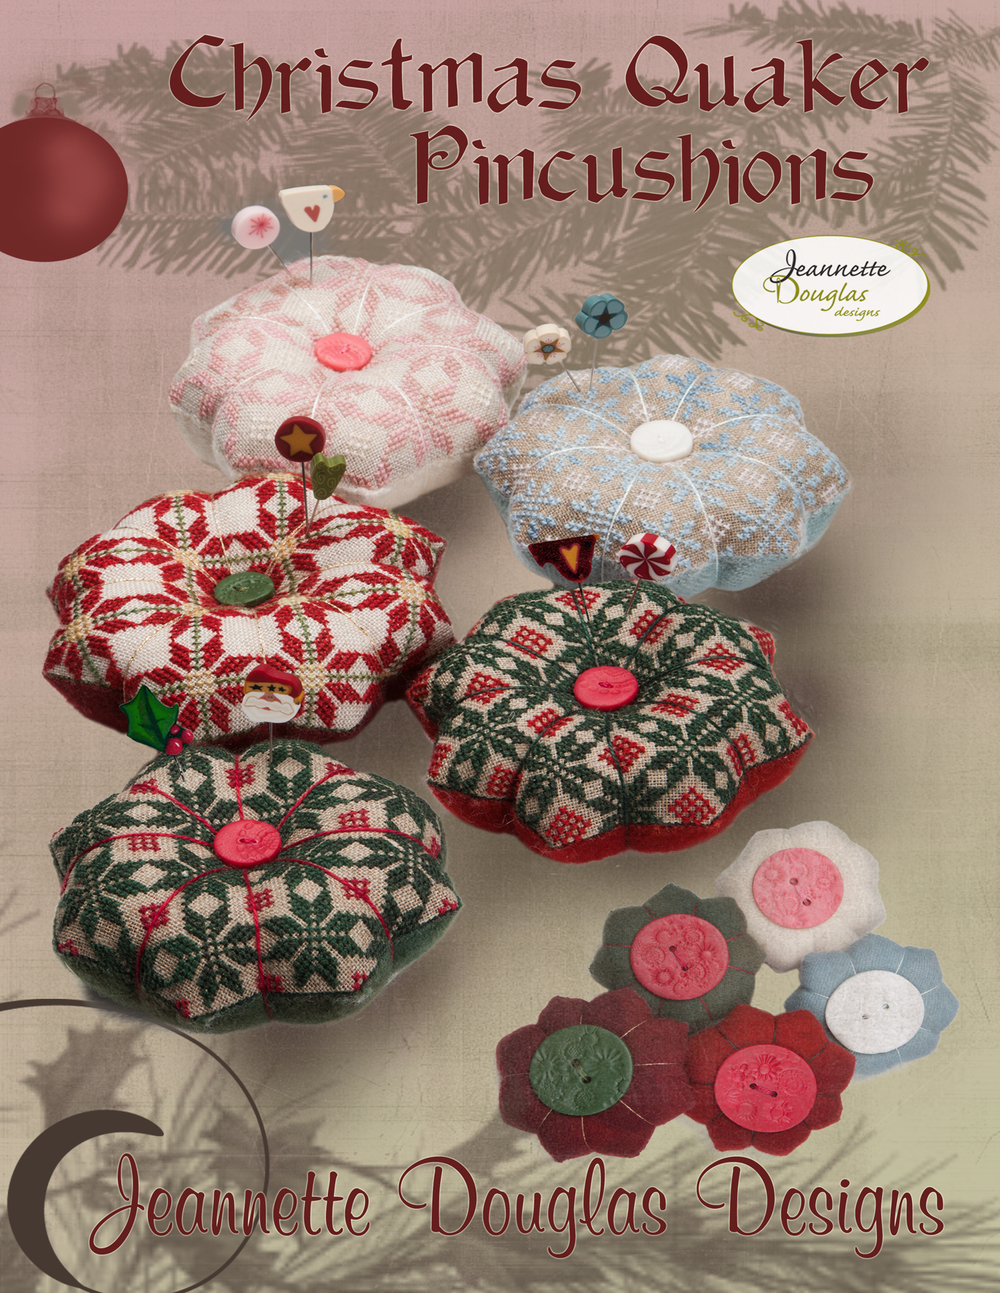 Christmas-Quaker-Pincushions-cover_1-web.jpg